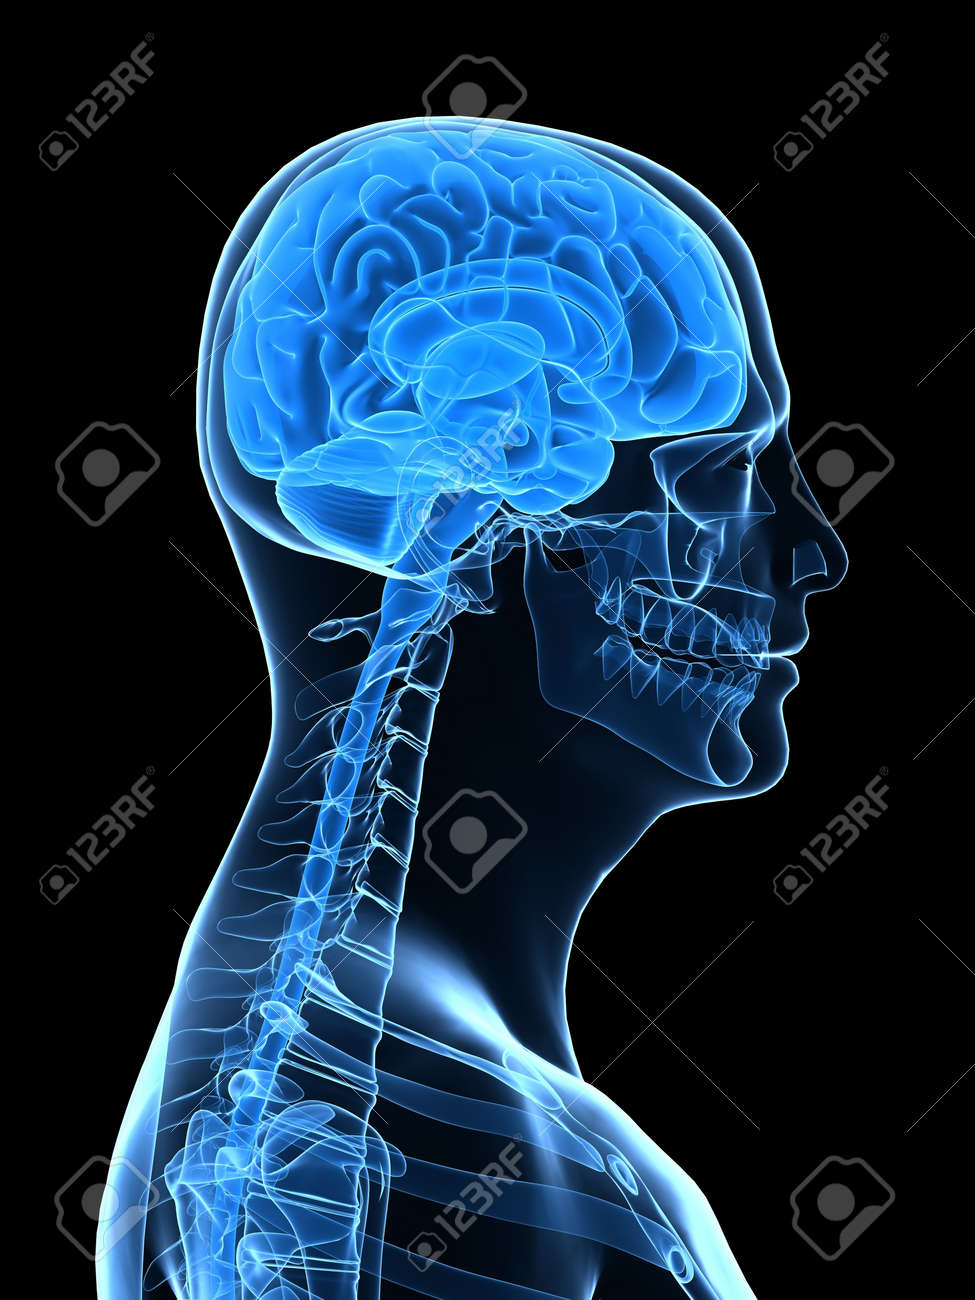 x-ray human head with brain parts Stock Photo - 5960348